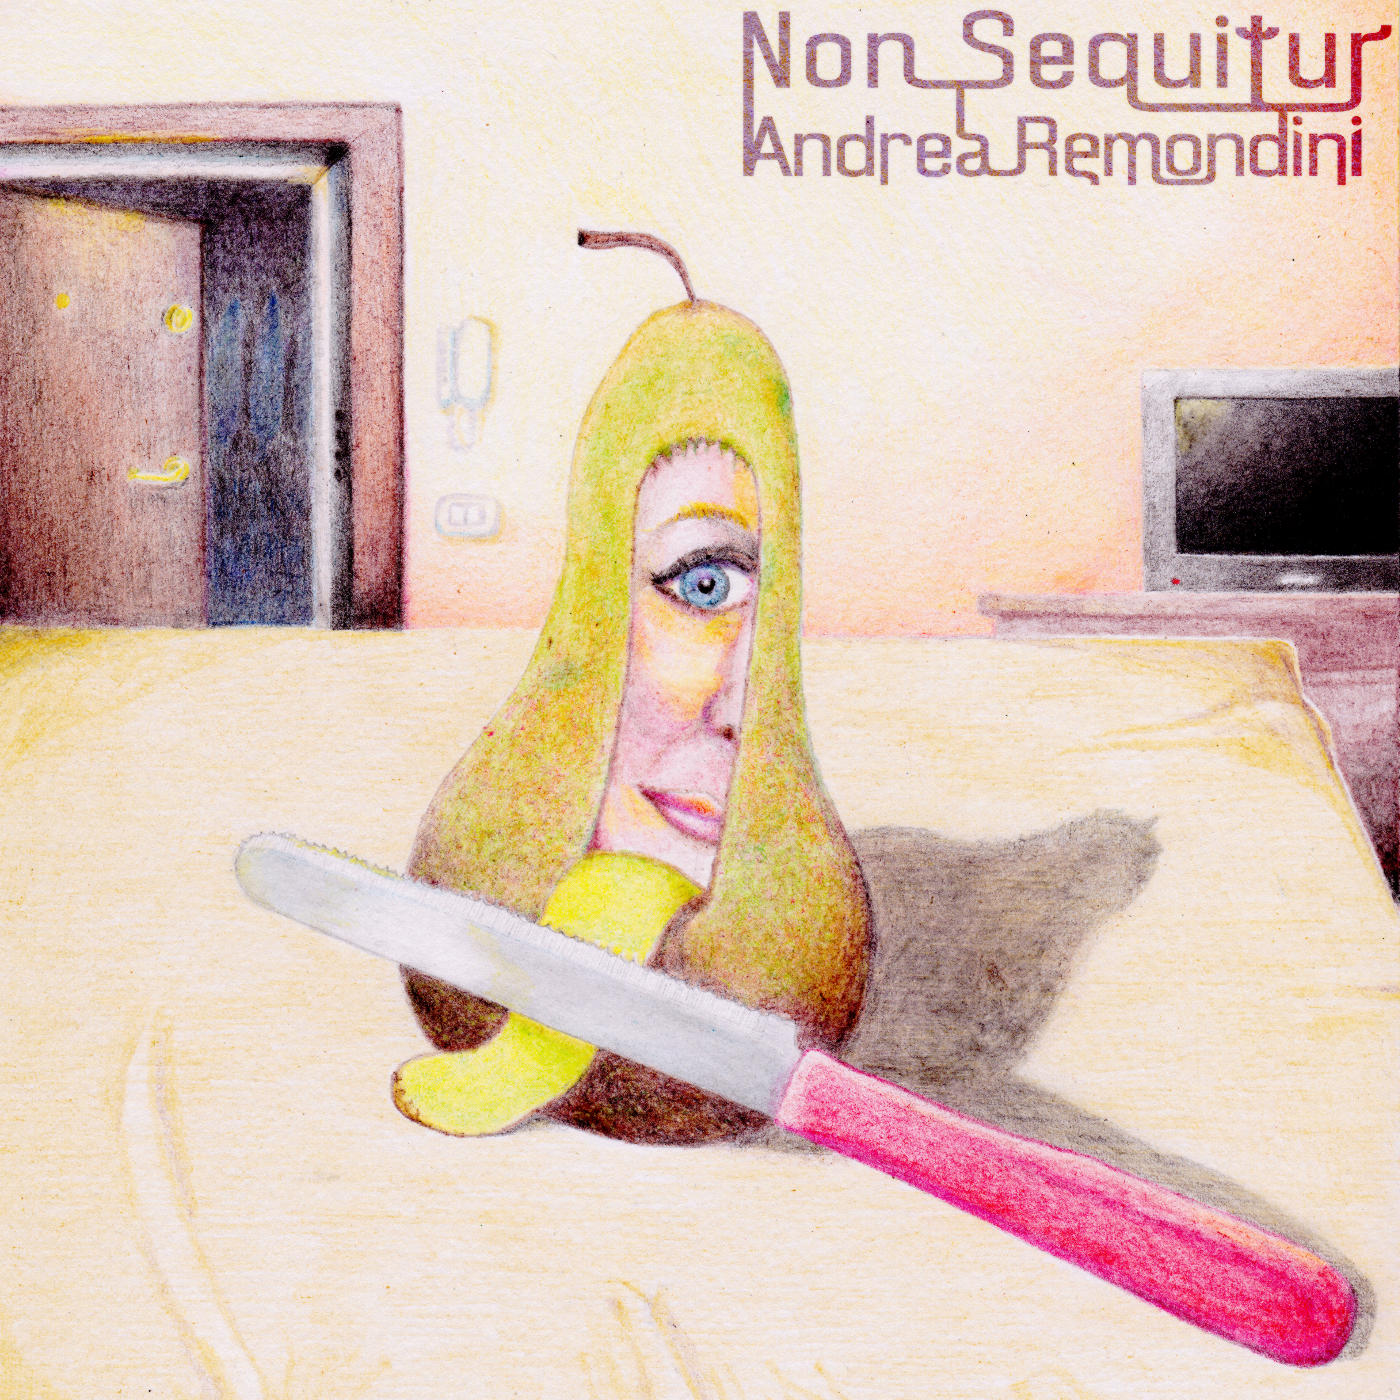 CD cover Andrea Remondini Non Sequitur Album Review